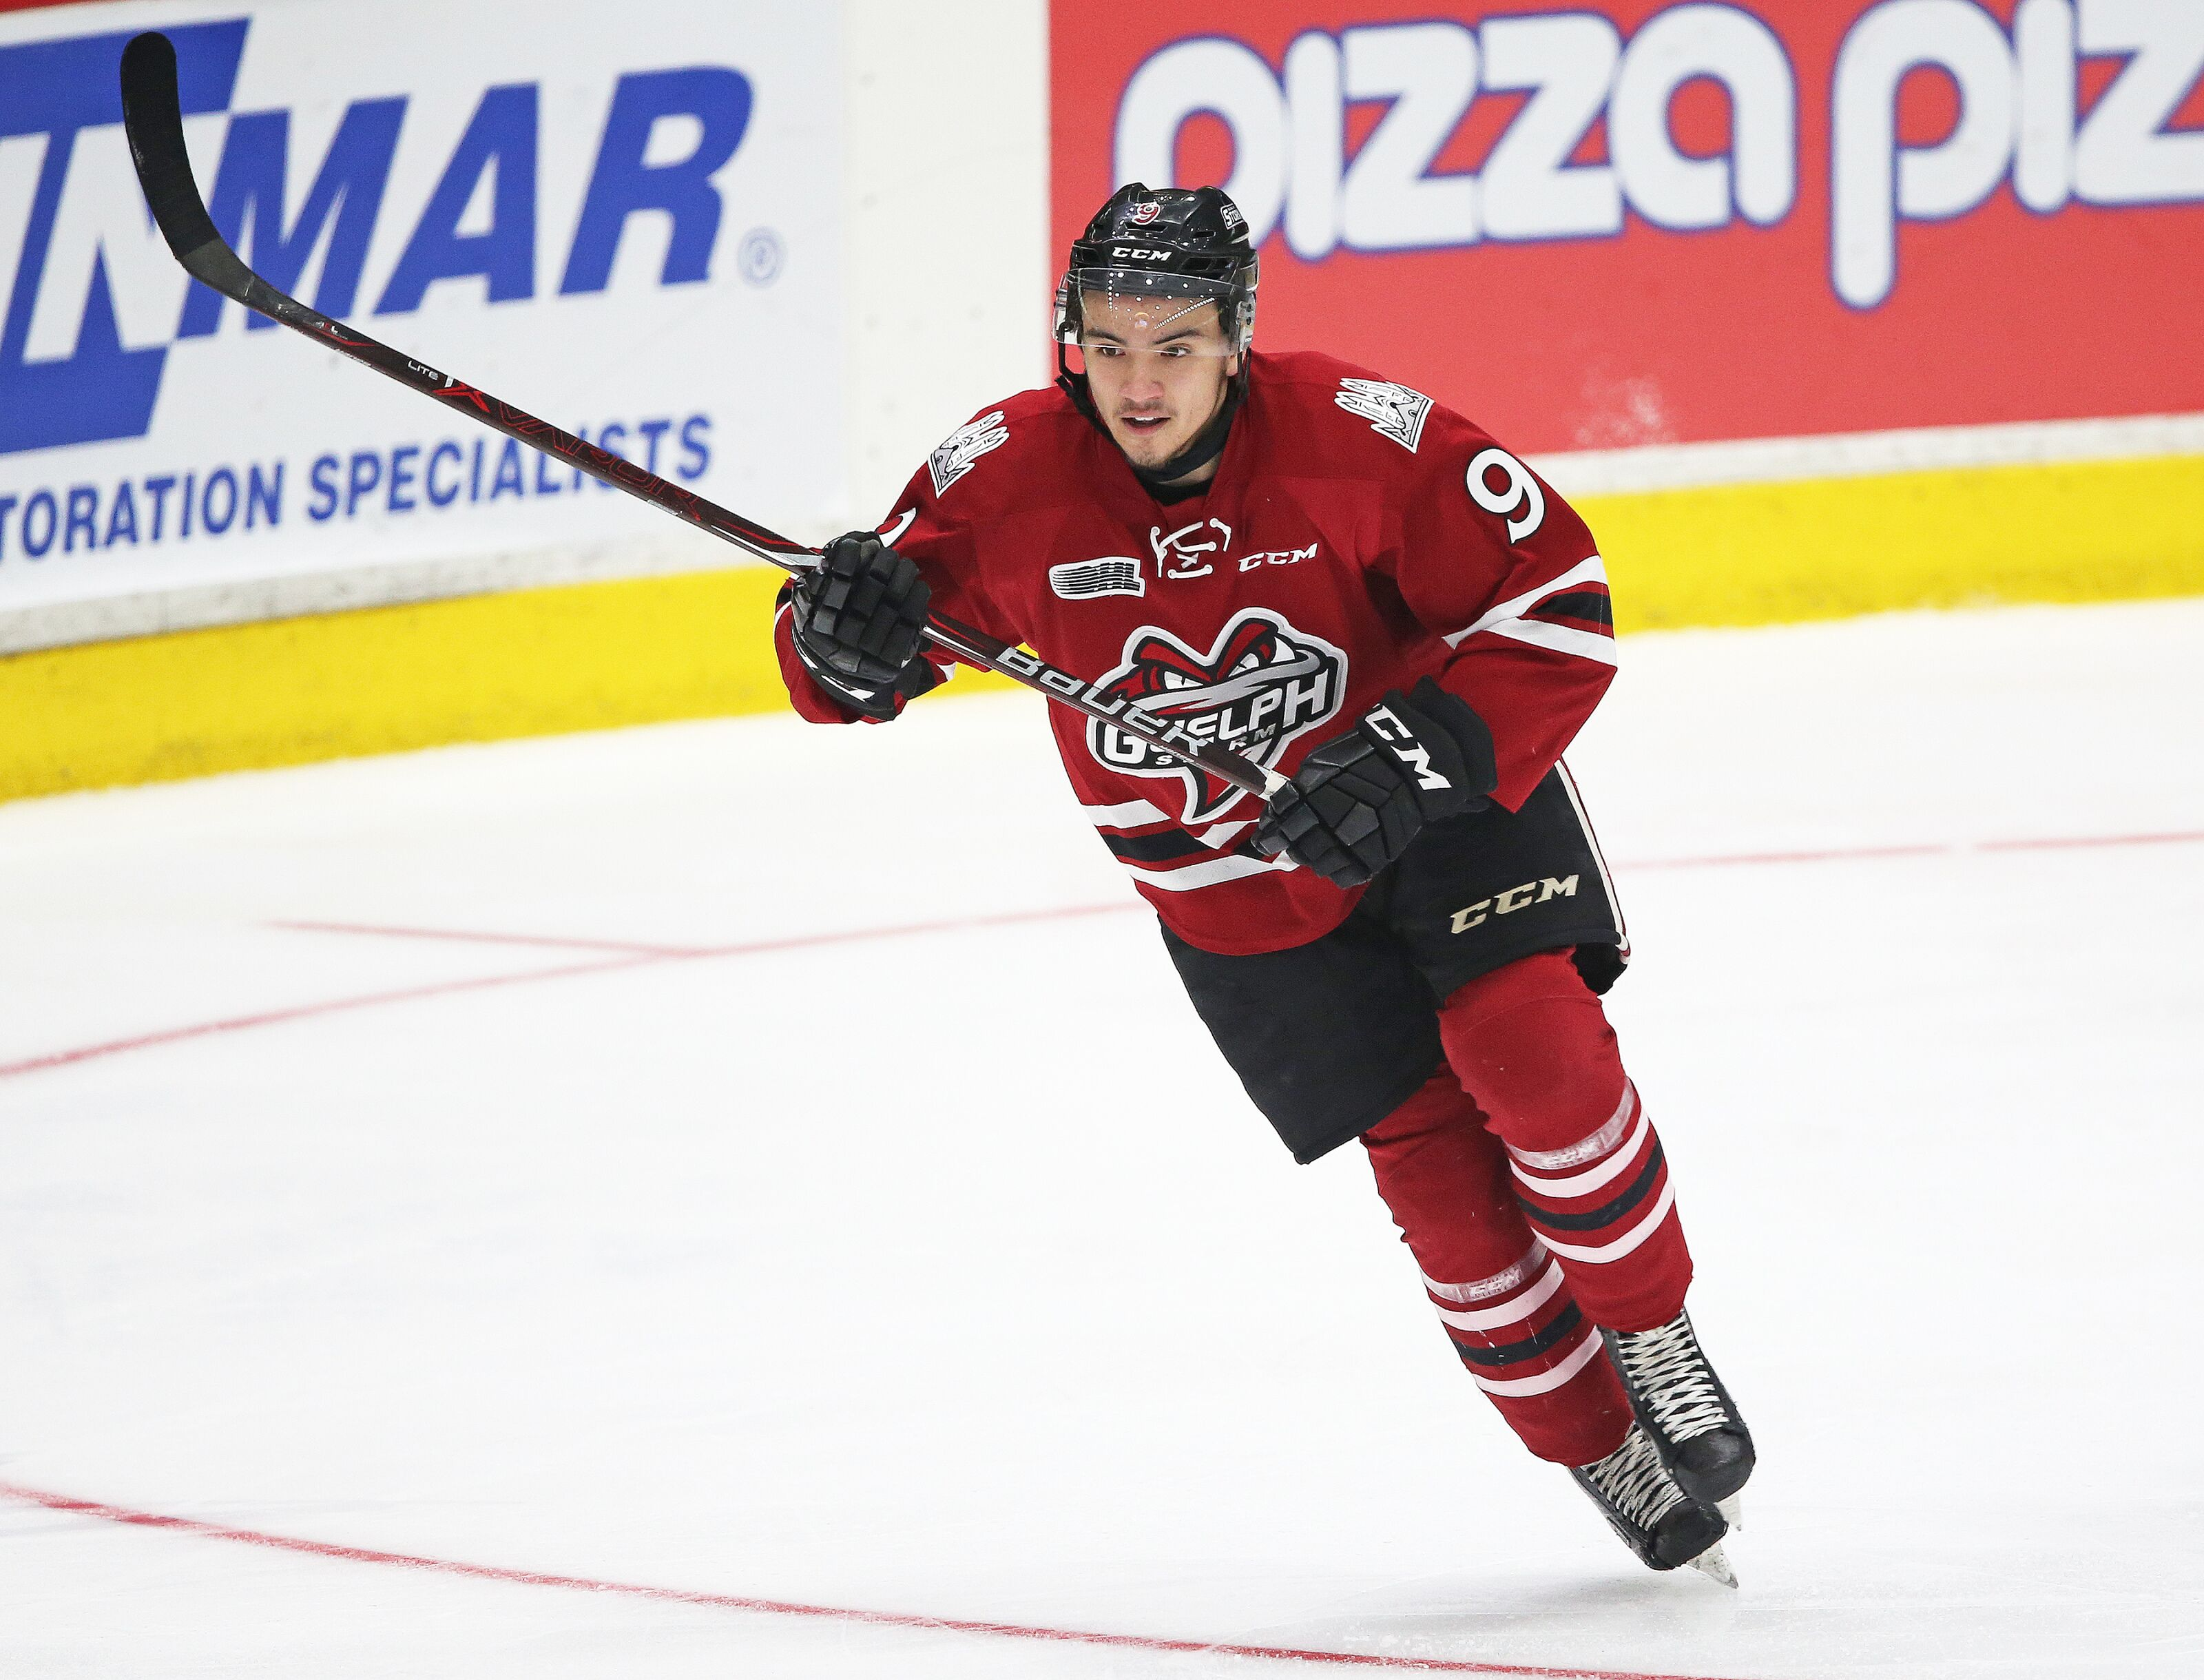 Montreal Canadiens: Nick Suzuki shows more of skill on Memorial Cup stage